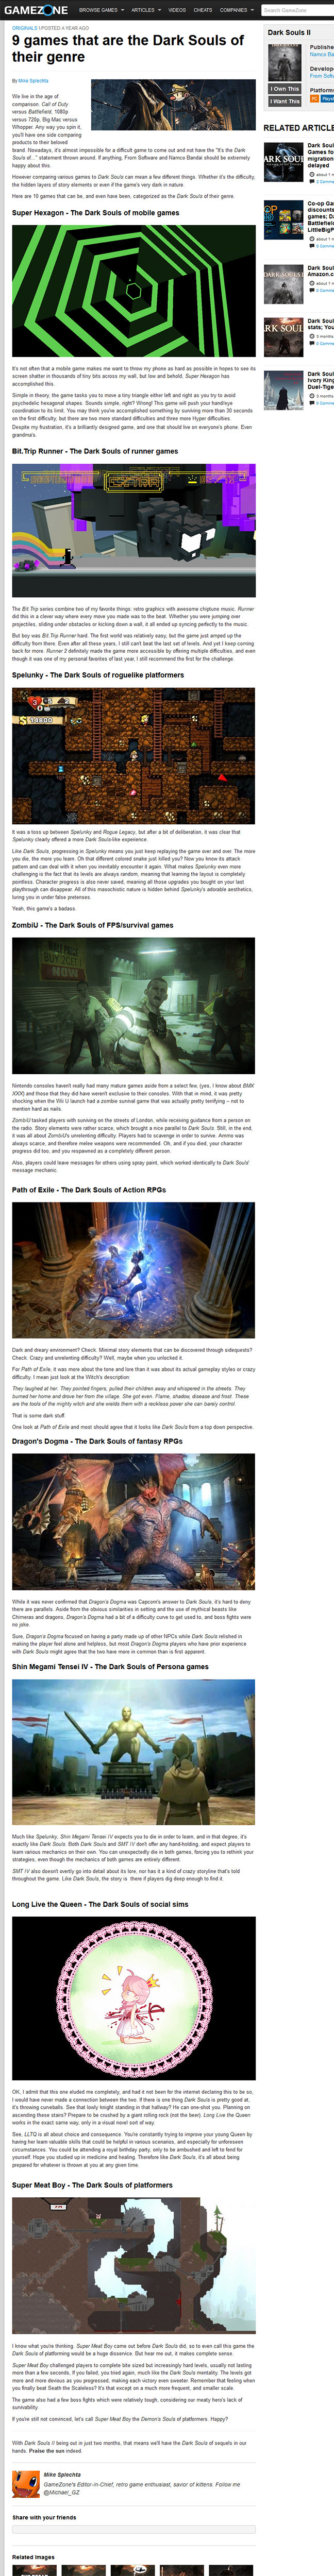 The Dark Souls of.... . GAMEZ NE 9 games that are the Dark Souls of their genre Publish: mm in Devalue Flam son. RELATED ARTICLE Hymn; versus new Whopper Aeou s